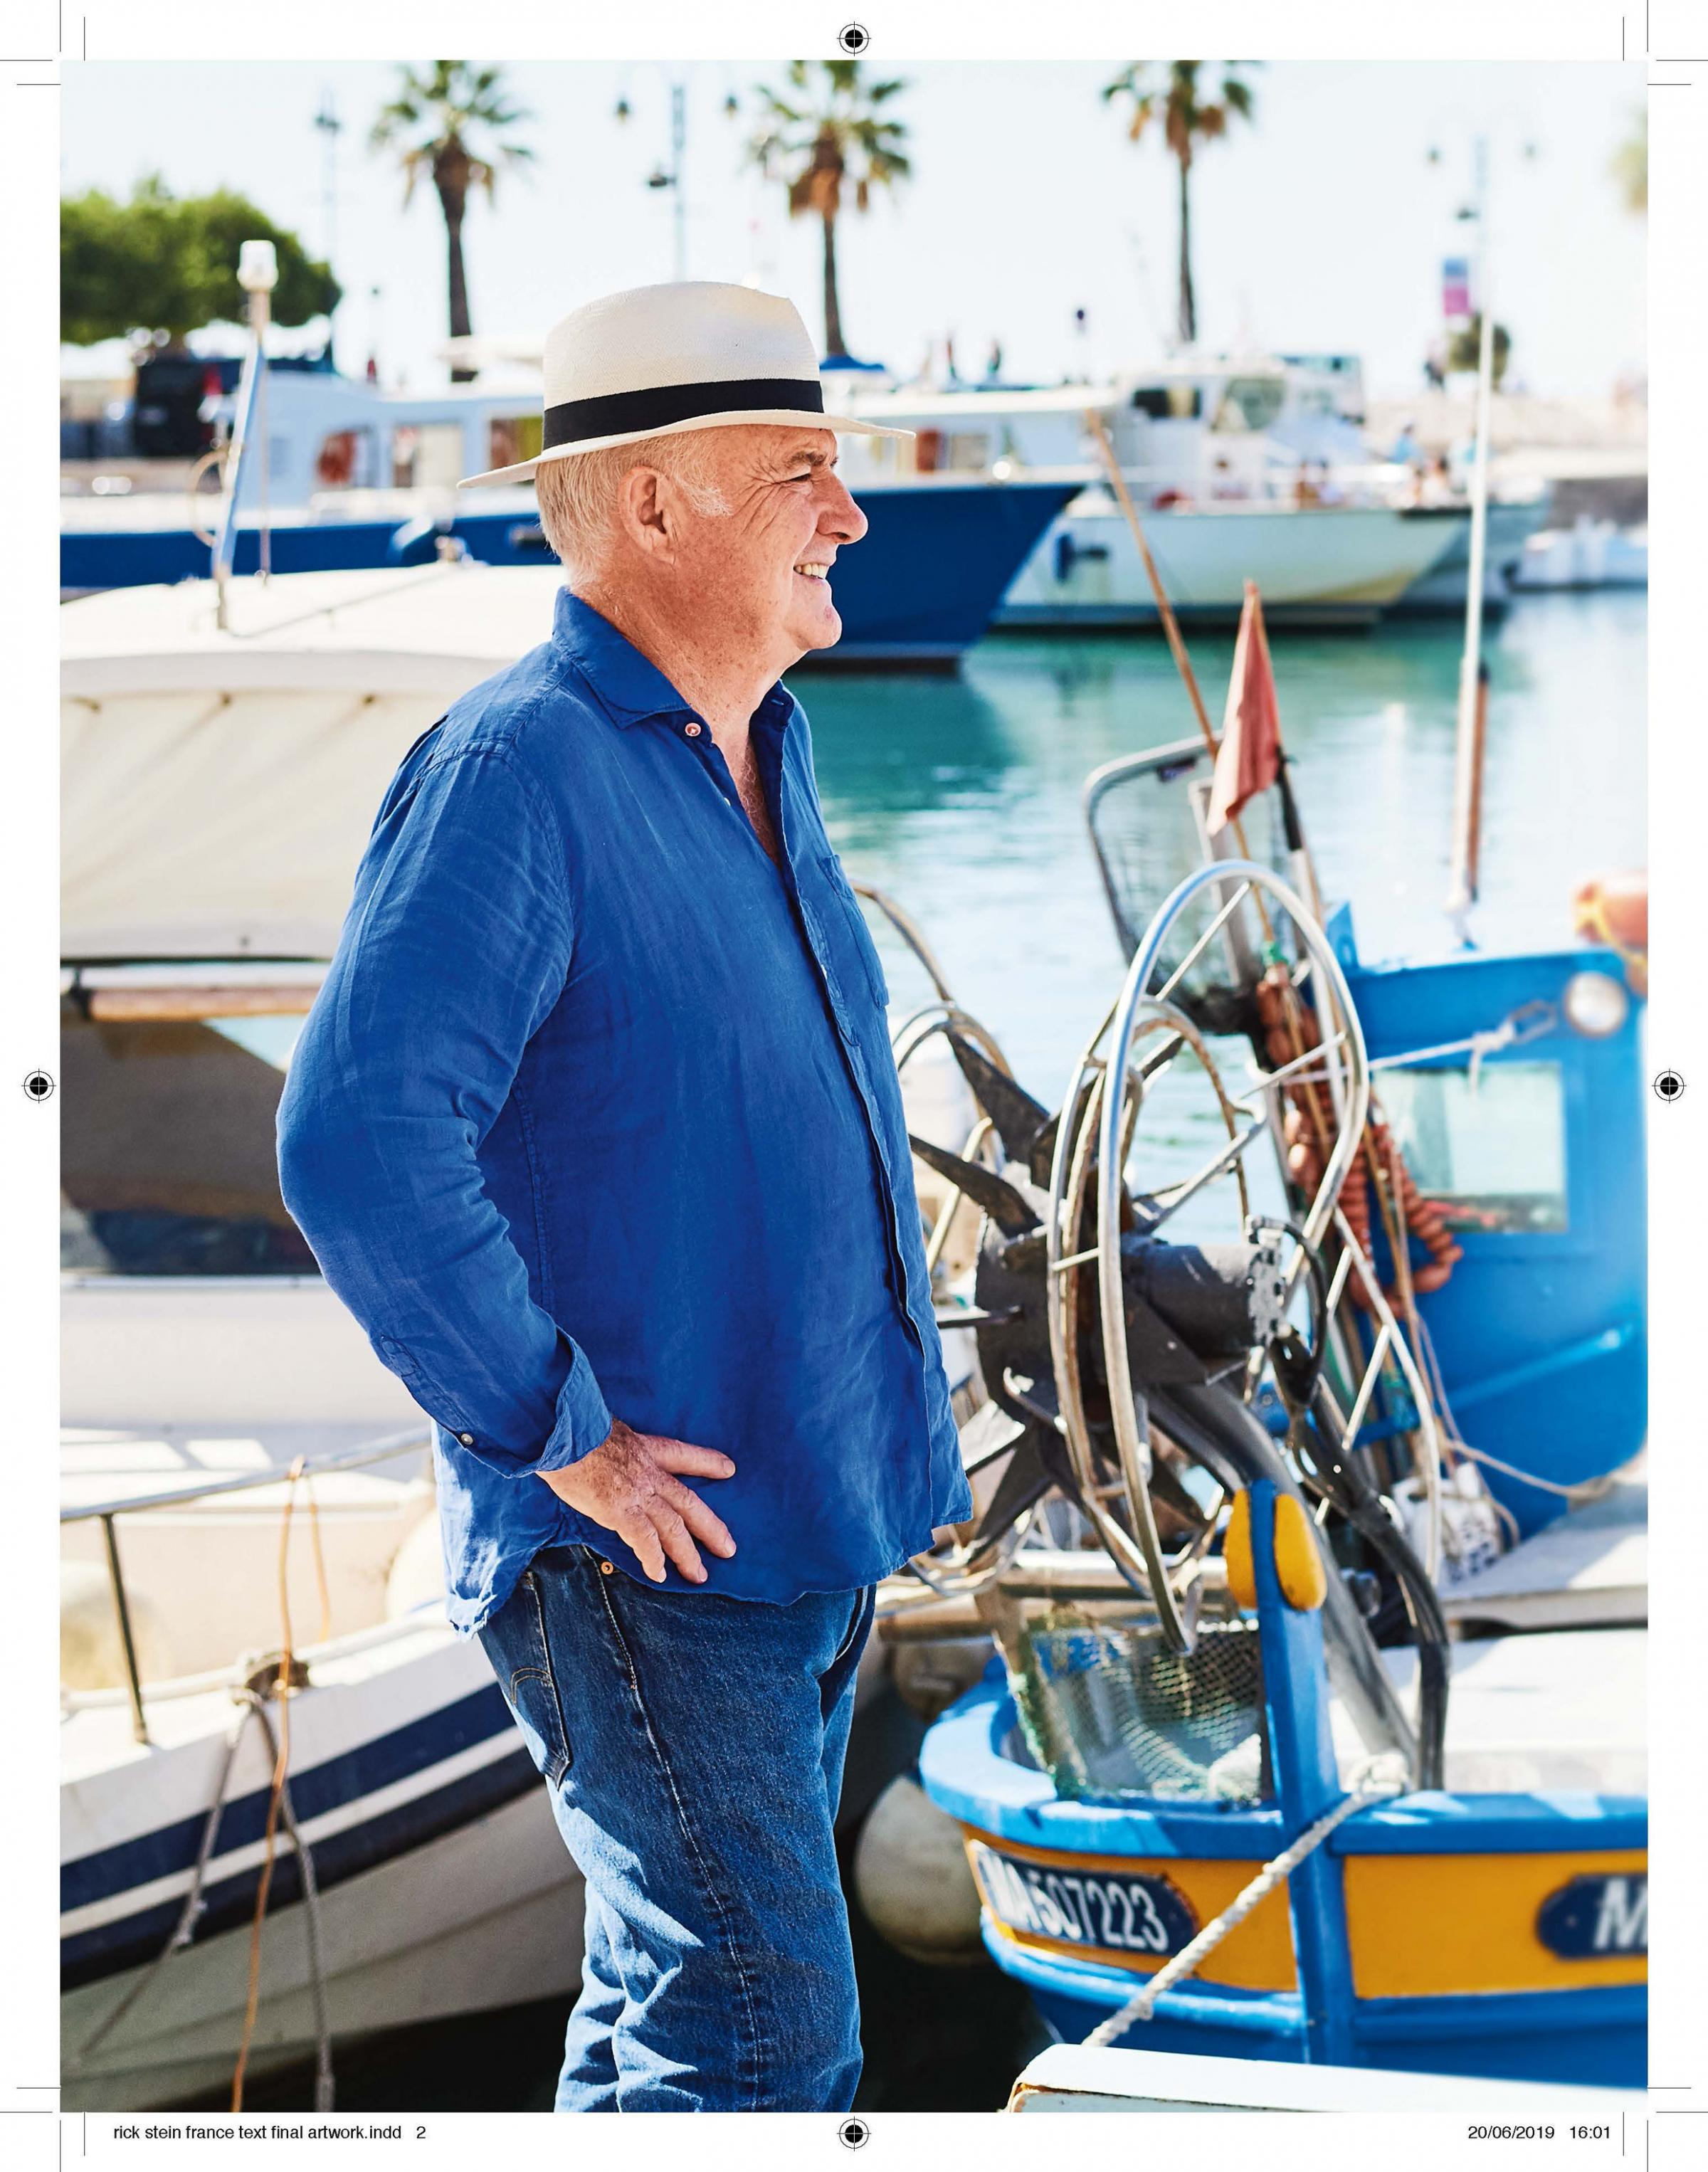 COOK THESE: Three recipes from Rick Stein's new cookbook and TV series, Secret France